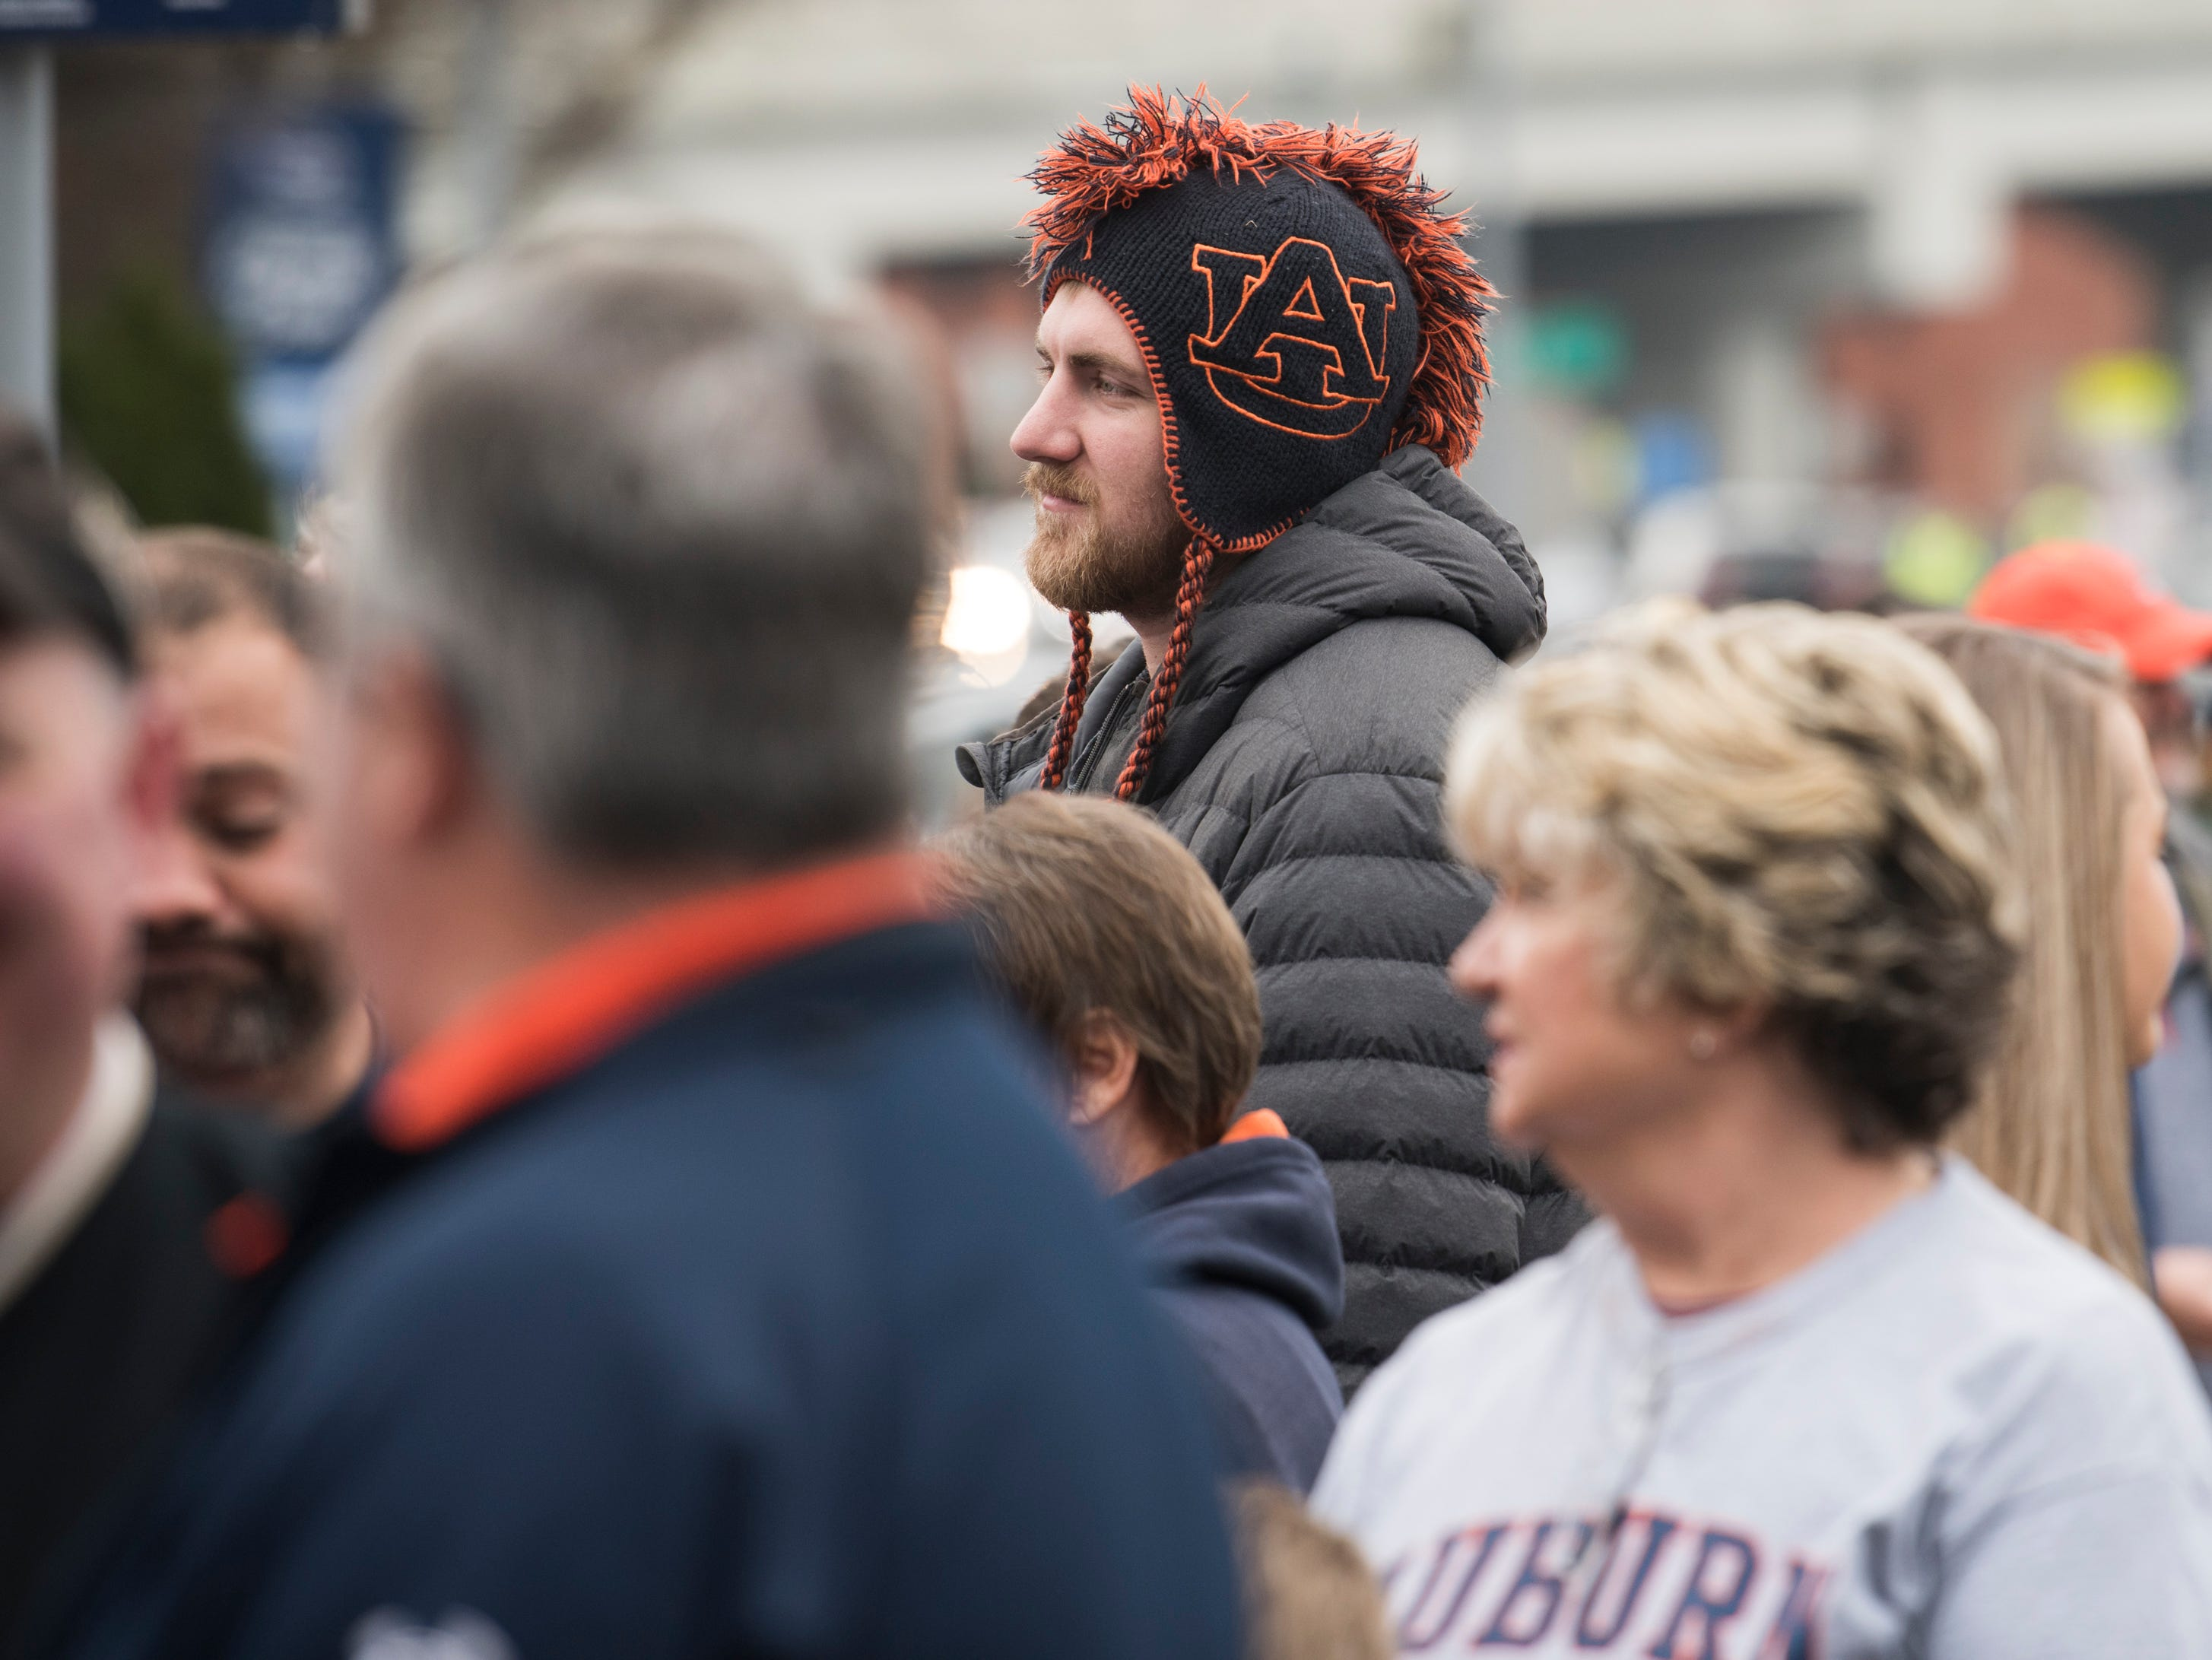 Auburn fans wait in line before Auburn takes on Purdue in the Music City Bowl at Nissan Stadium in Nashville, Tenn., on Friday, Dec. 28, 2018.